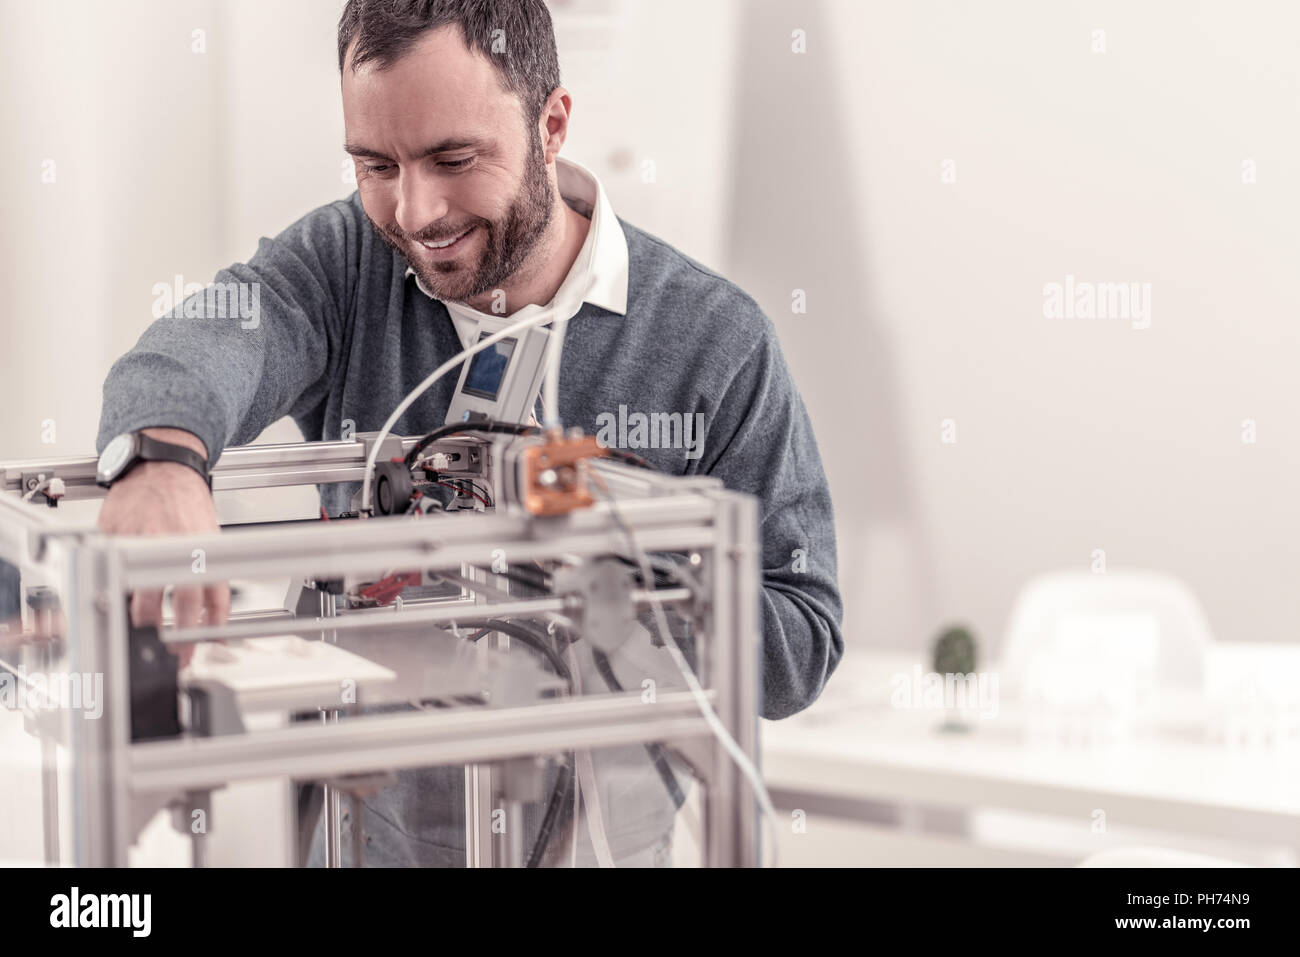 Smiling adult man testing new a3D printer - Stock Image